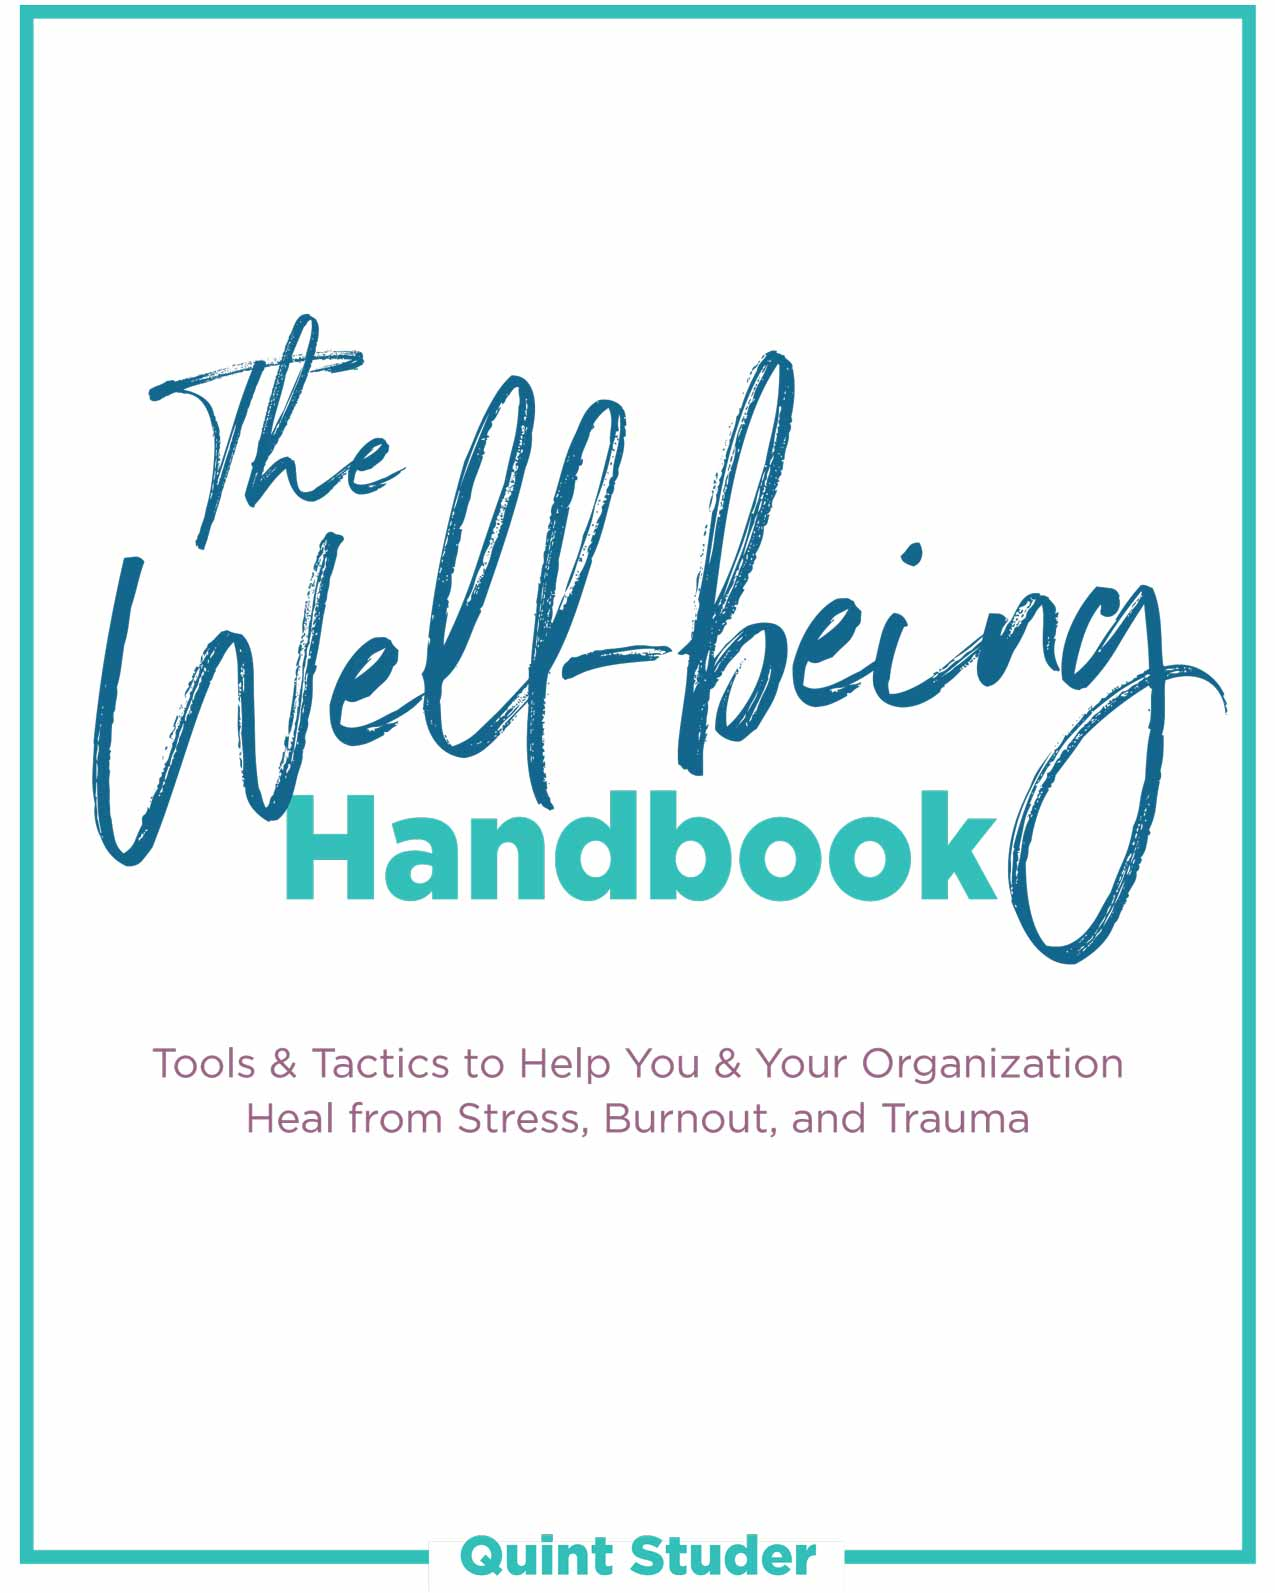 The Well-Being Handbook cover